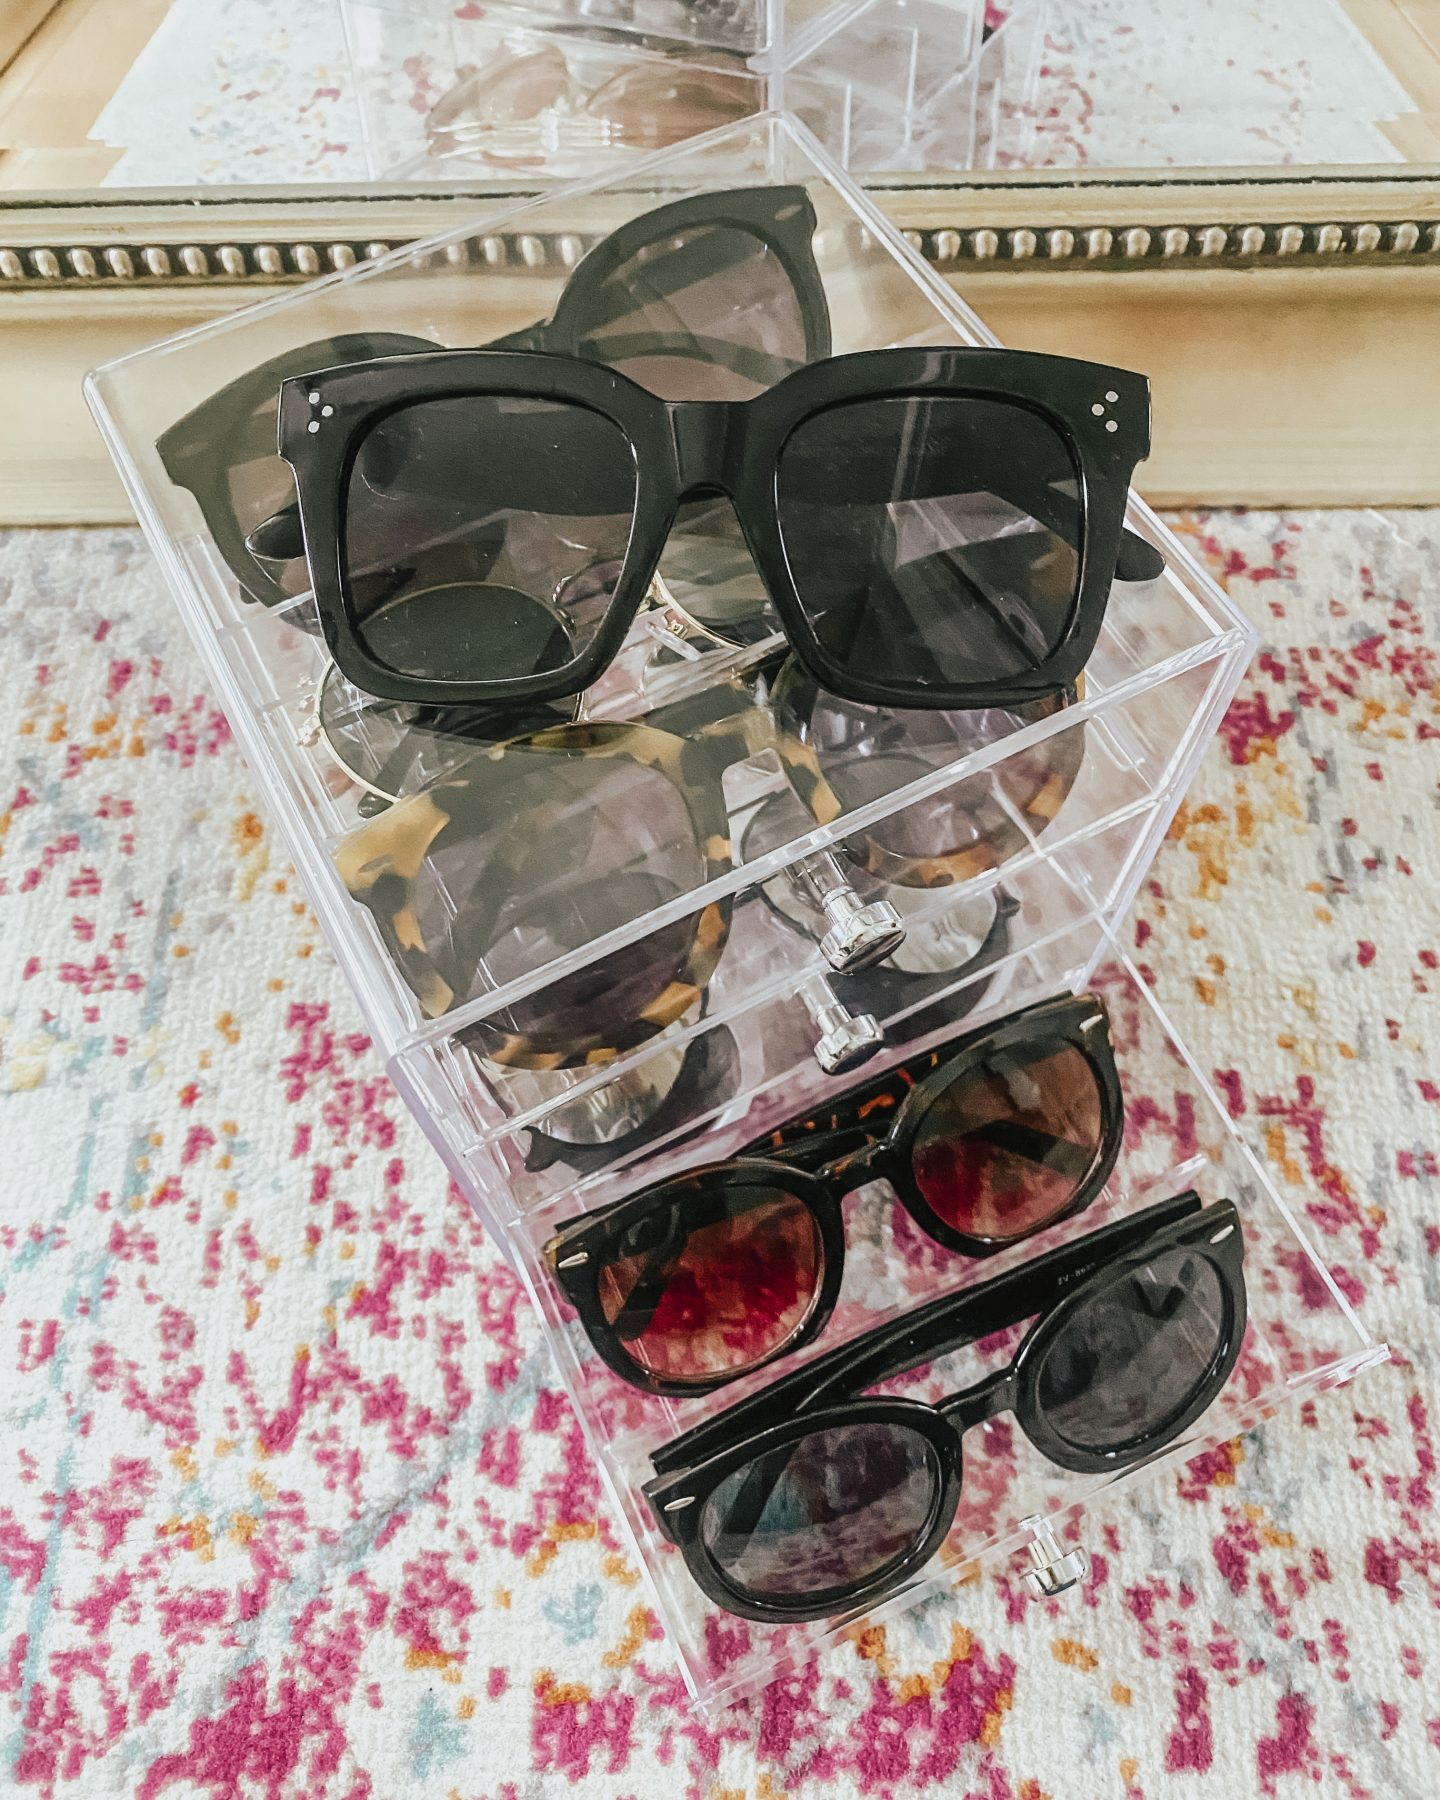 the best winter Amazon finds, sunglass holder, designer sunglasses dupes